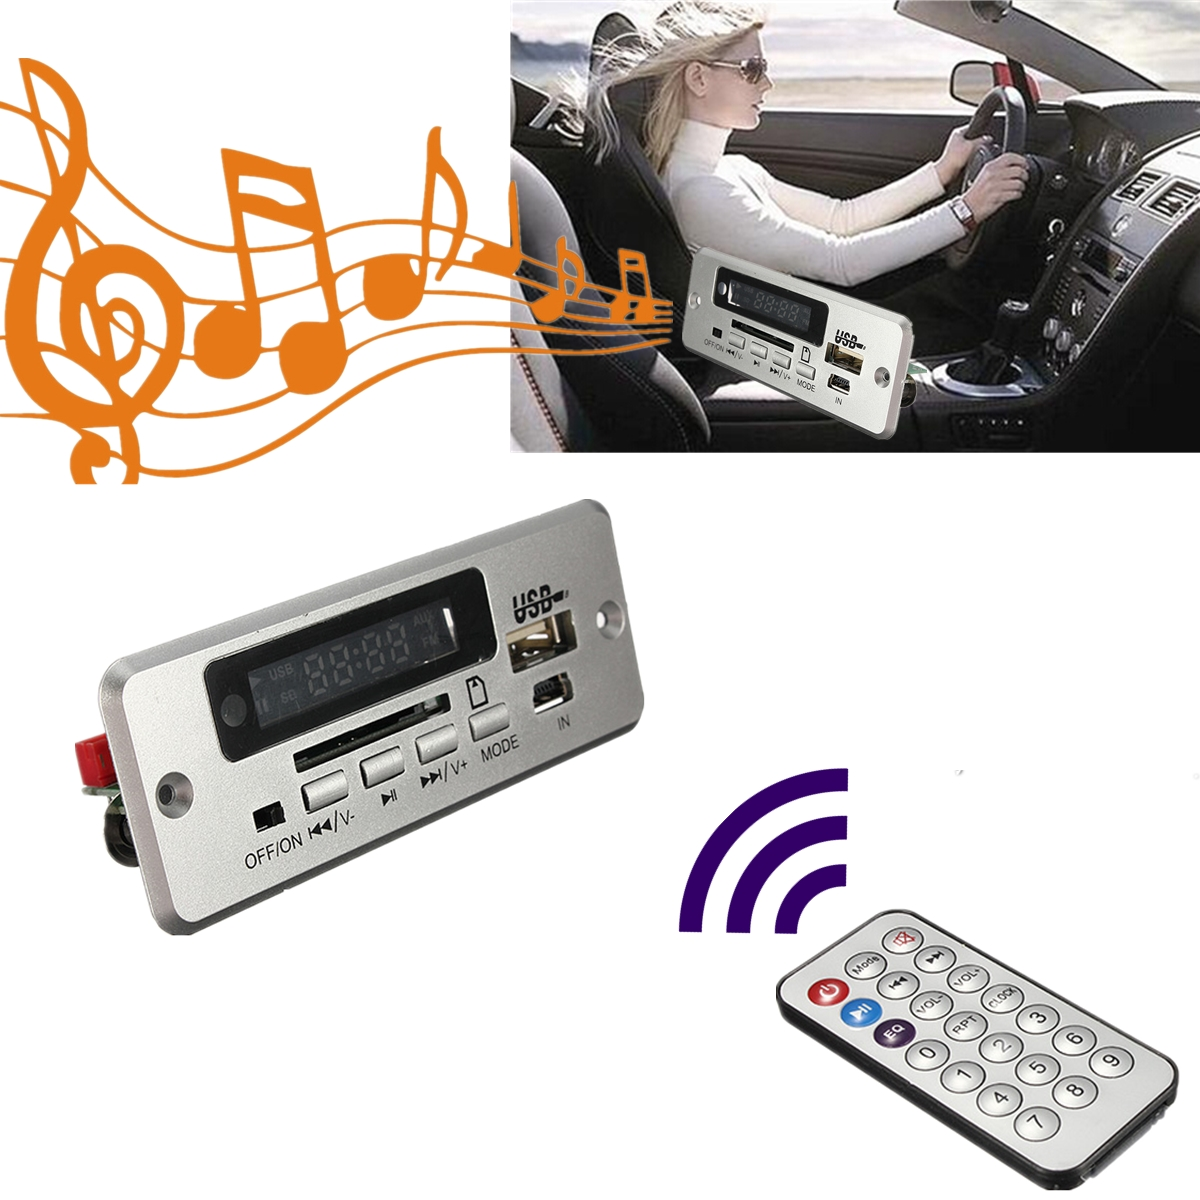 Wireless LED Car kit MP3 Audio Decoder FM Radio USB TF SD MMC Card Remote Control 5V